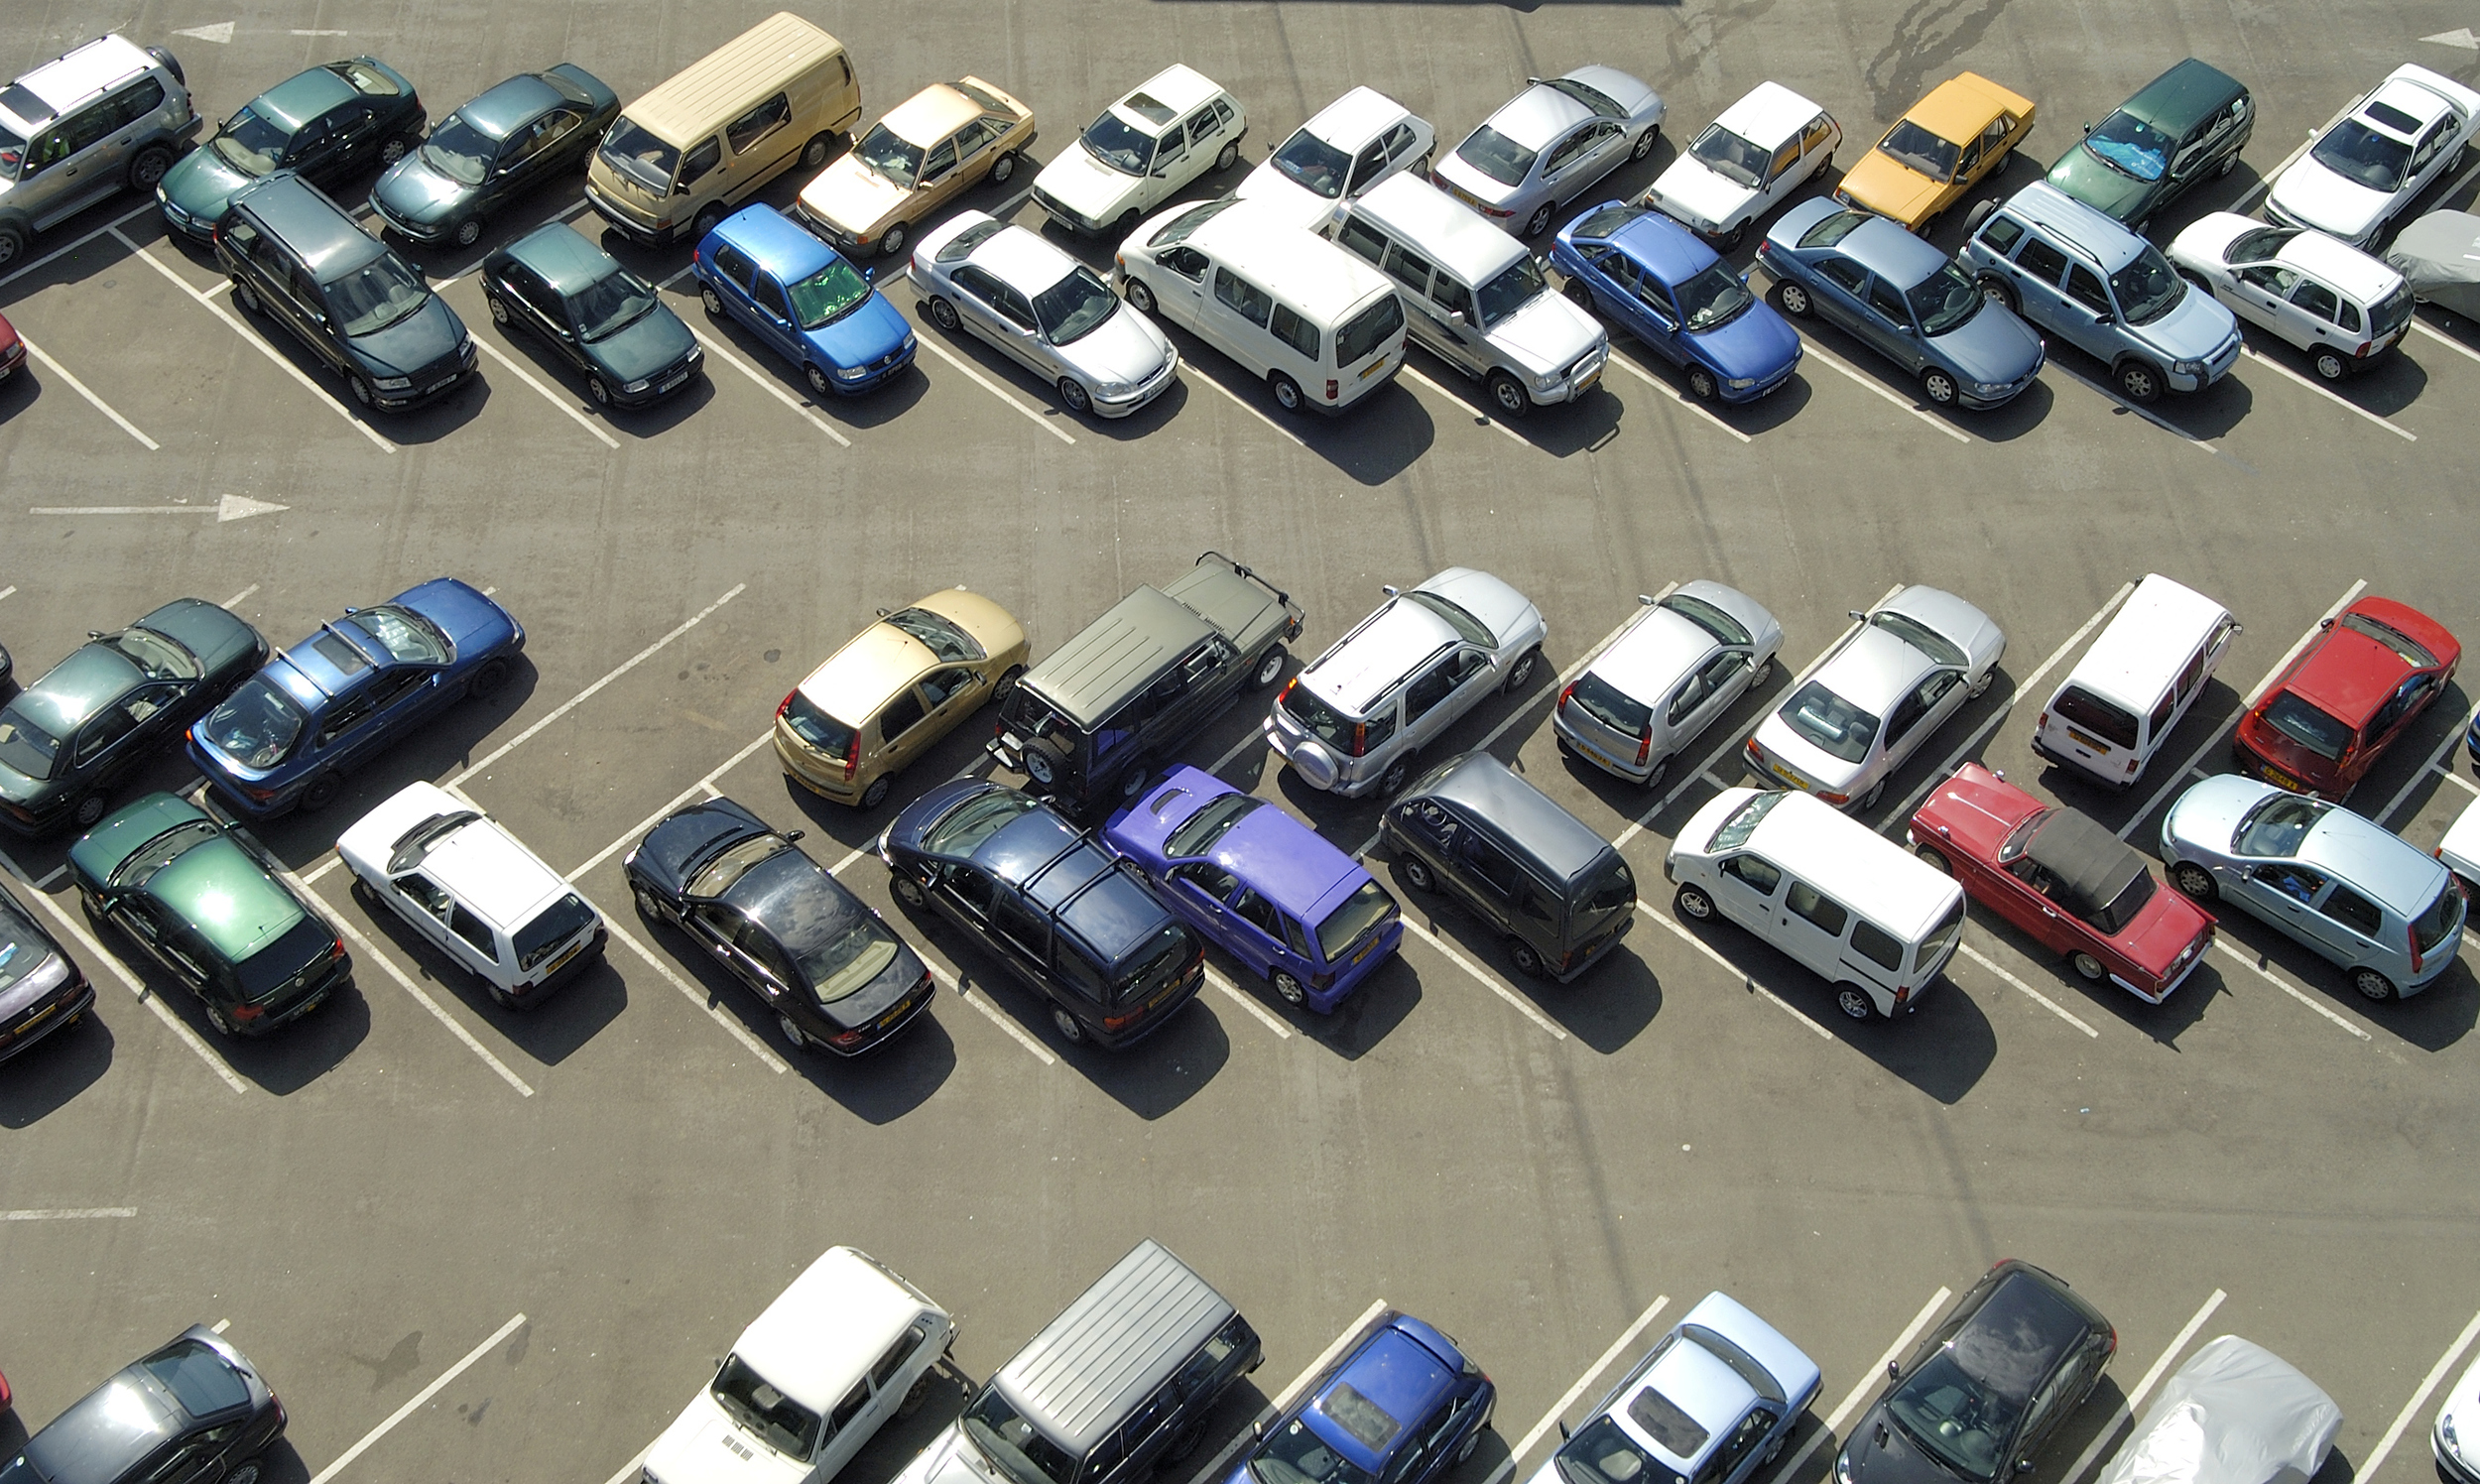 Is an attacker wirelessly hacking your network from the parking lot?